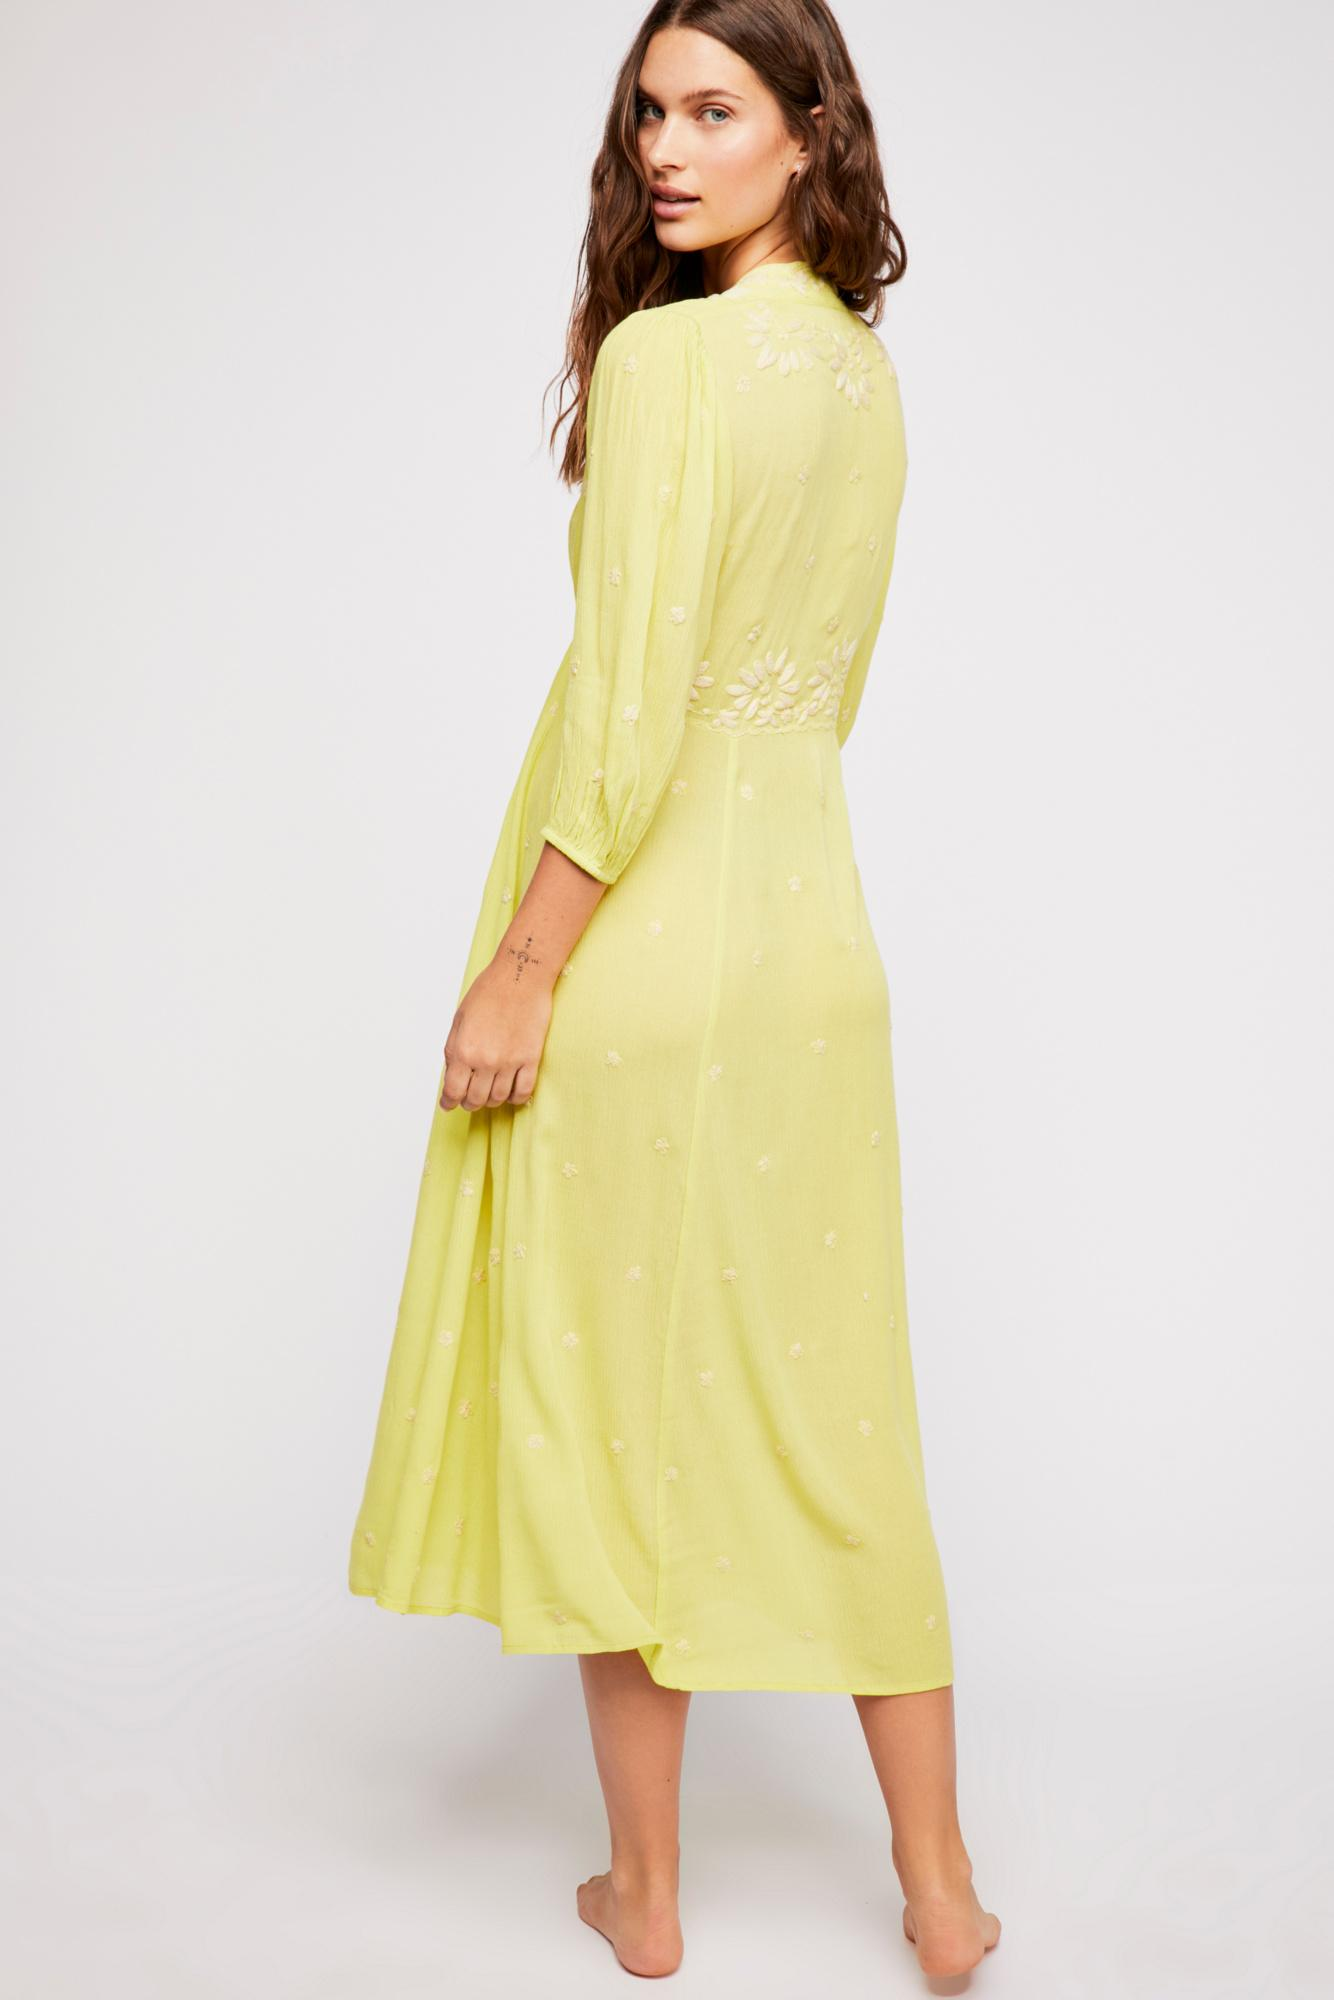 Free Embroidered Dress Yellow In Midi People Lyst Fable 34Lj5RqcA